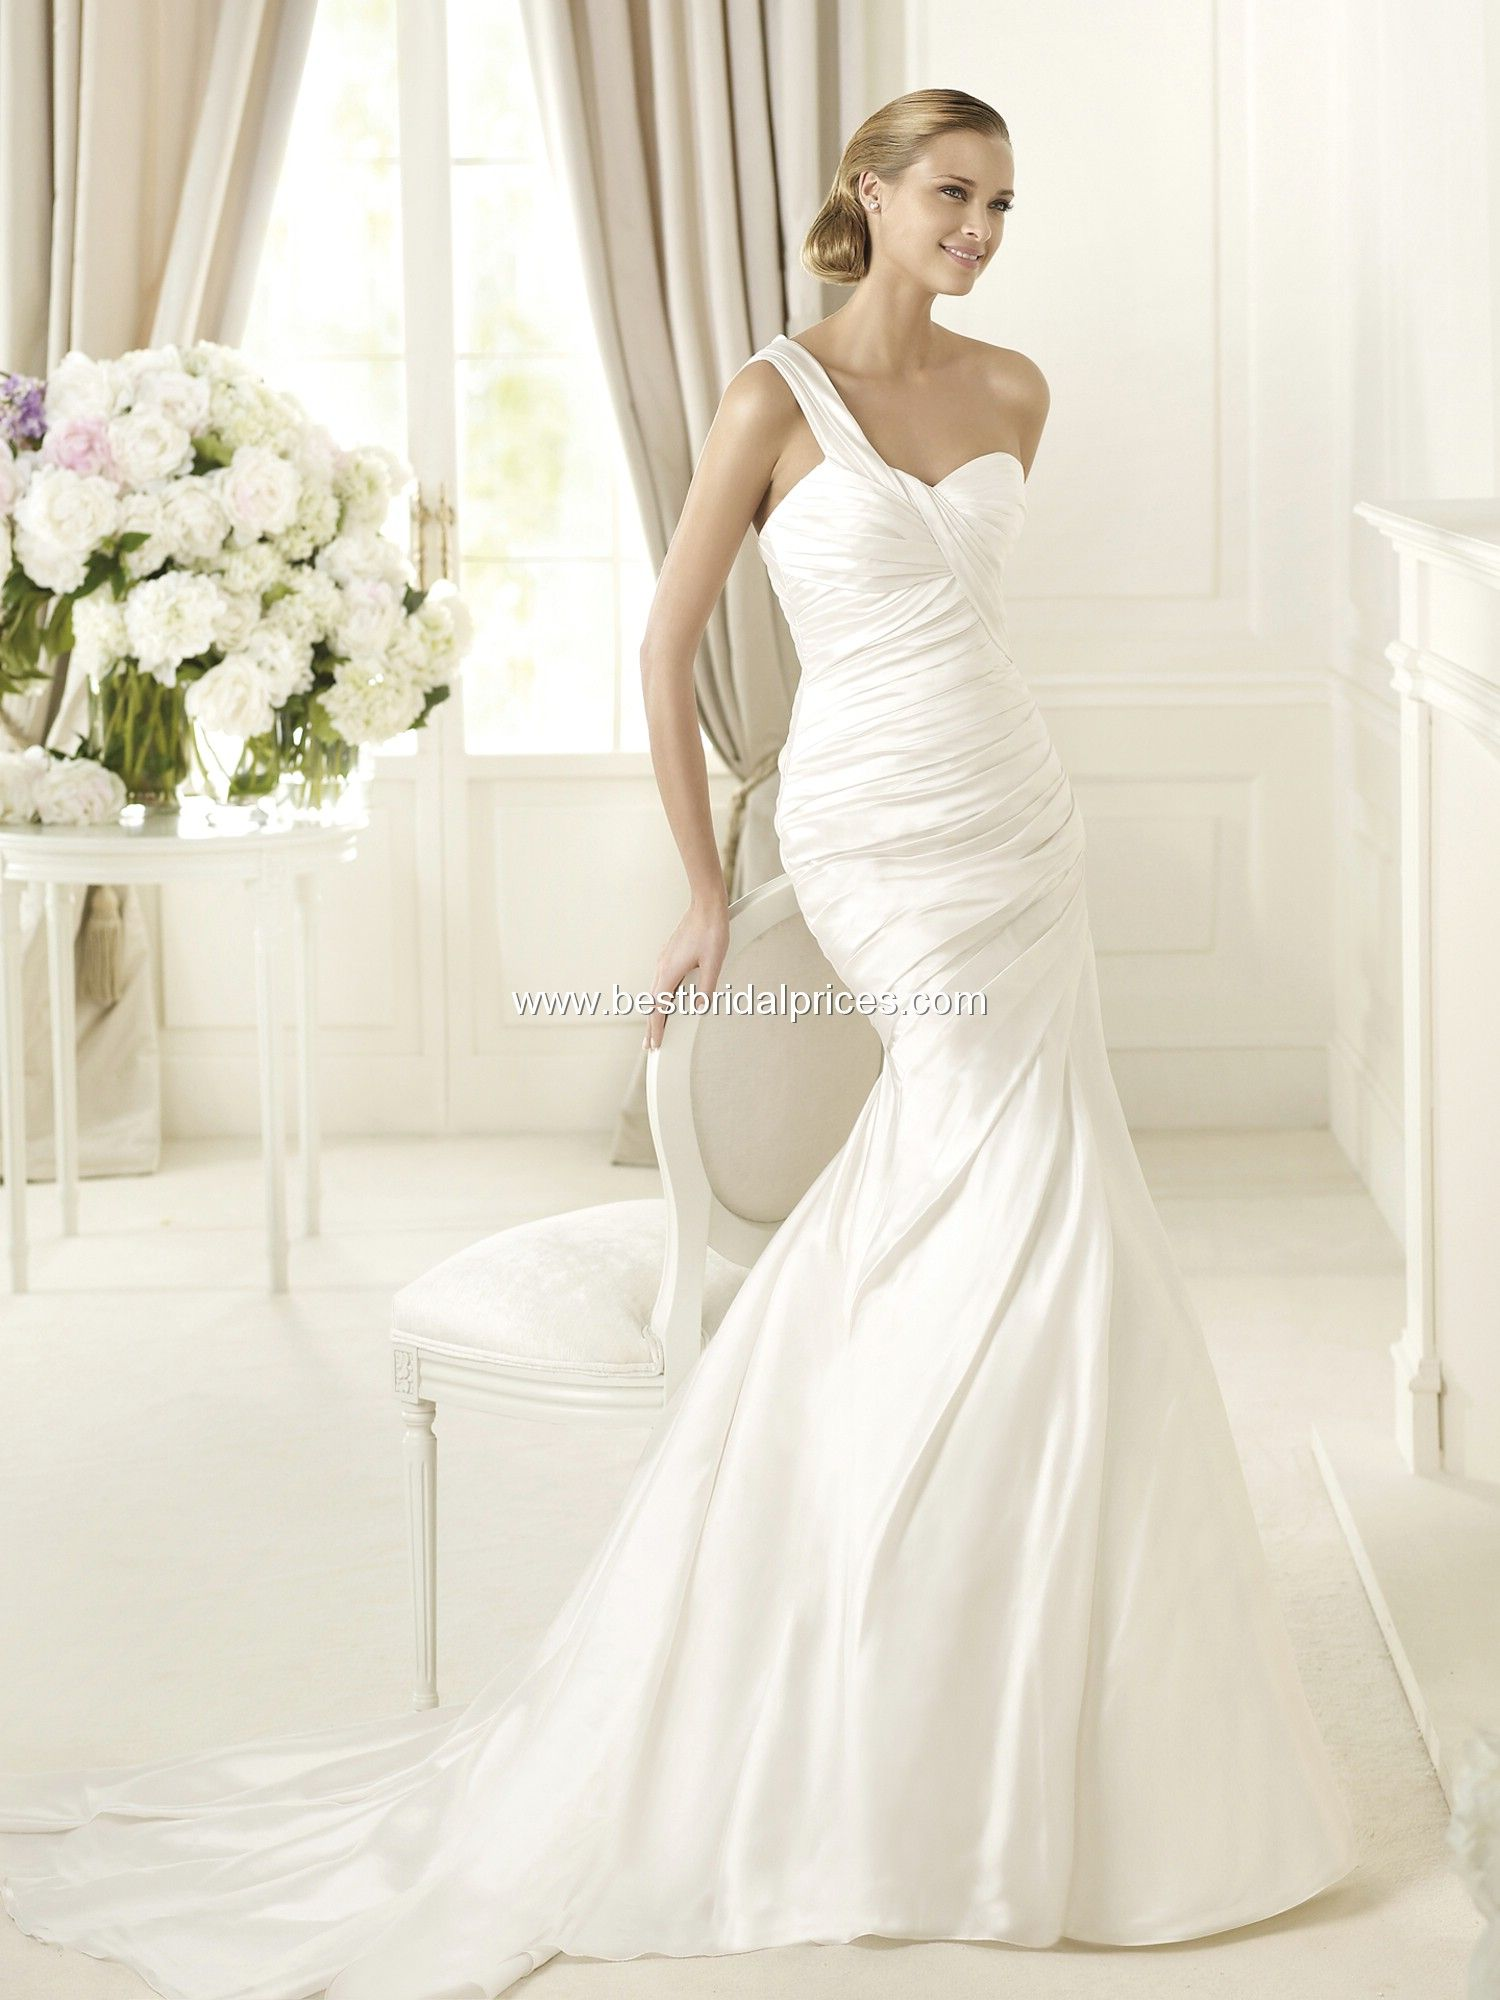 Pronovias wedding dresses style dakota description spring